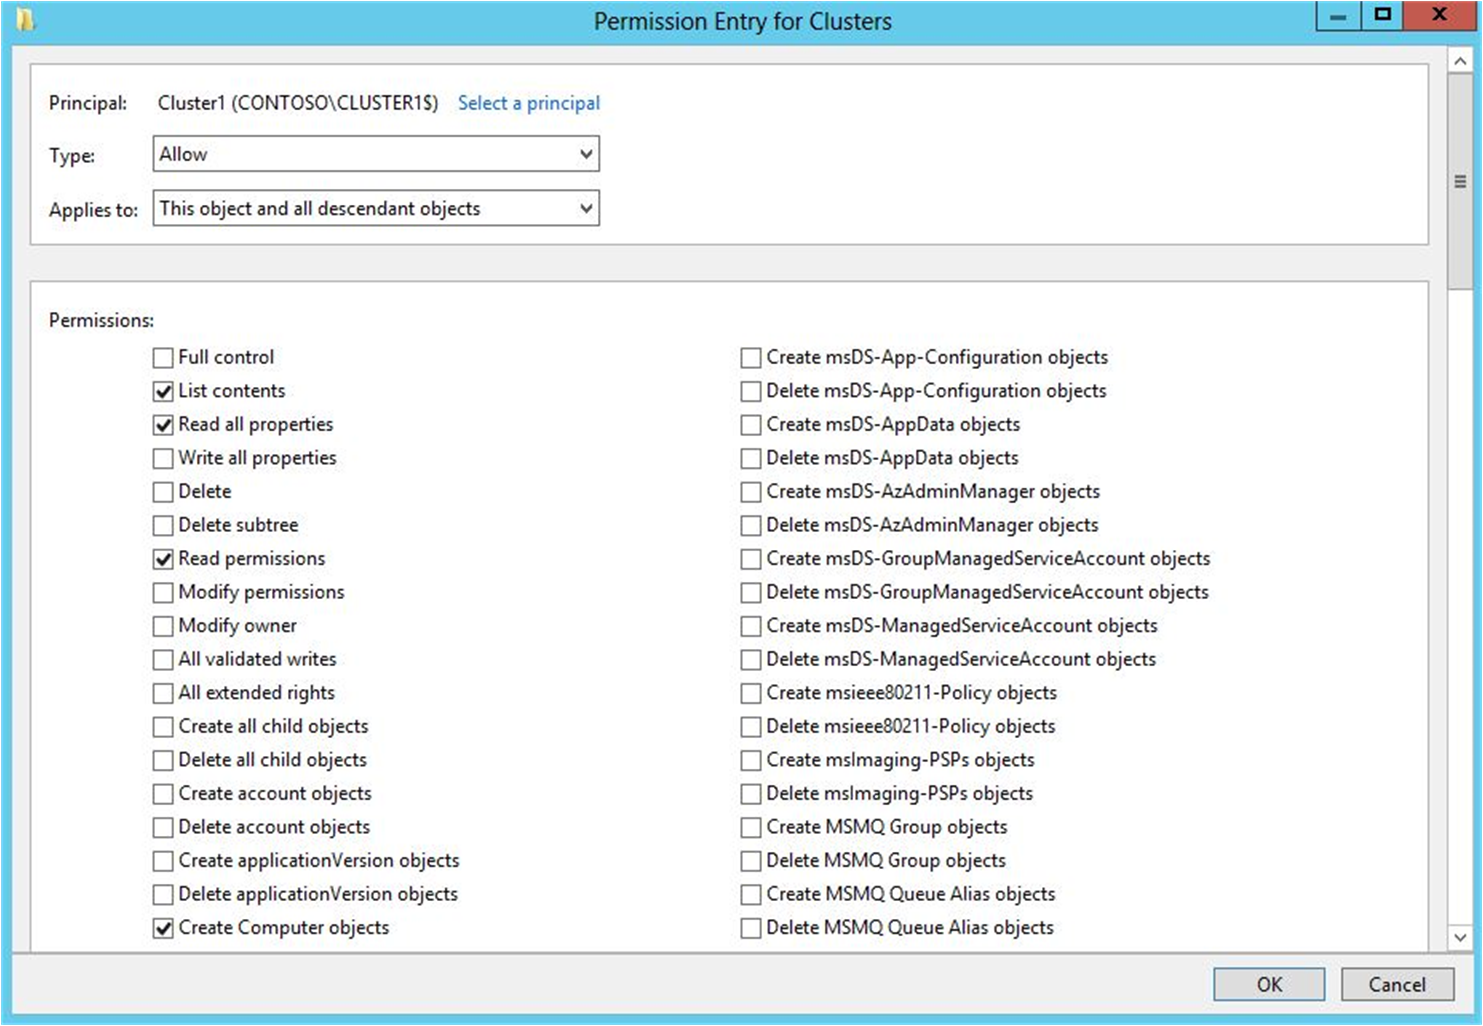 Granting the Create Computer objects permission to the CNO